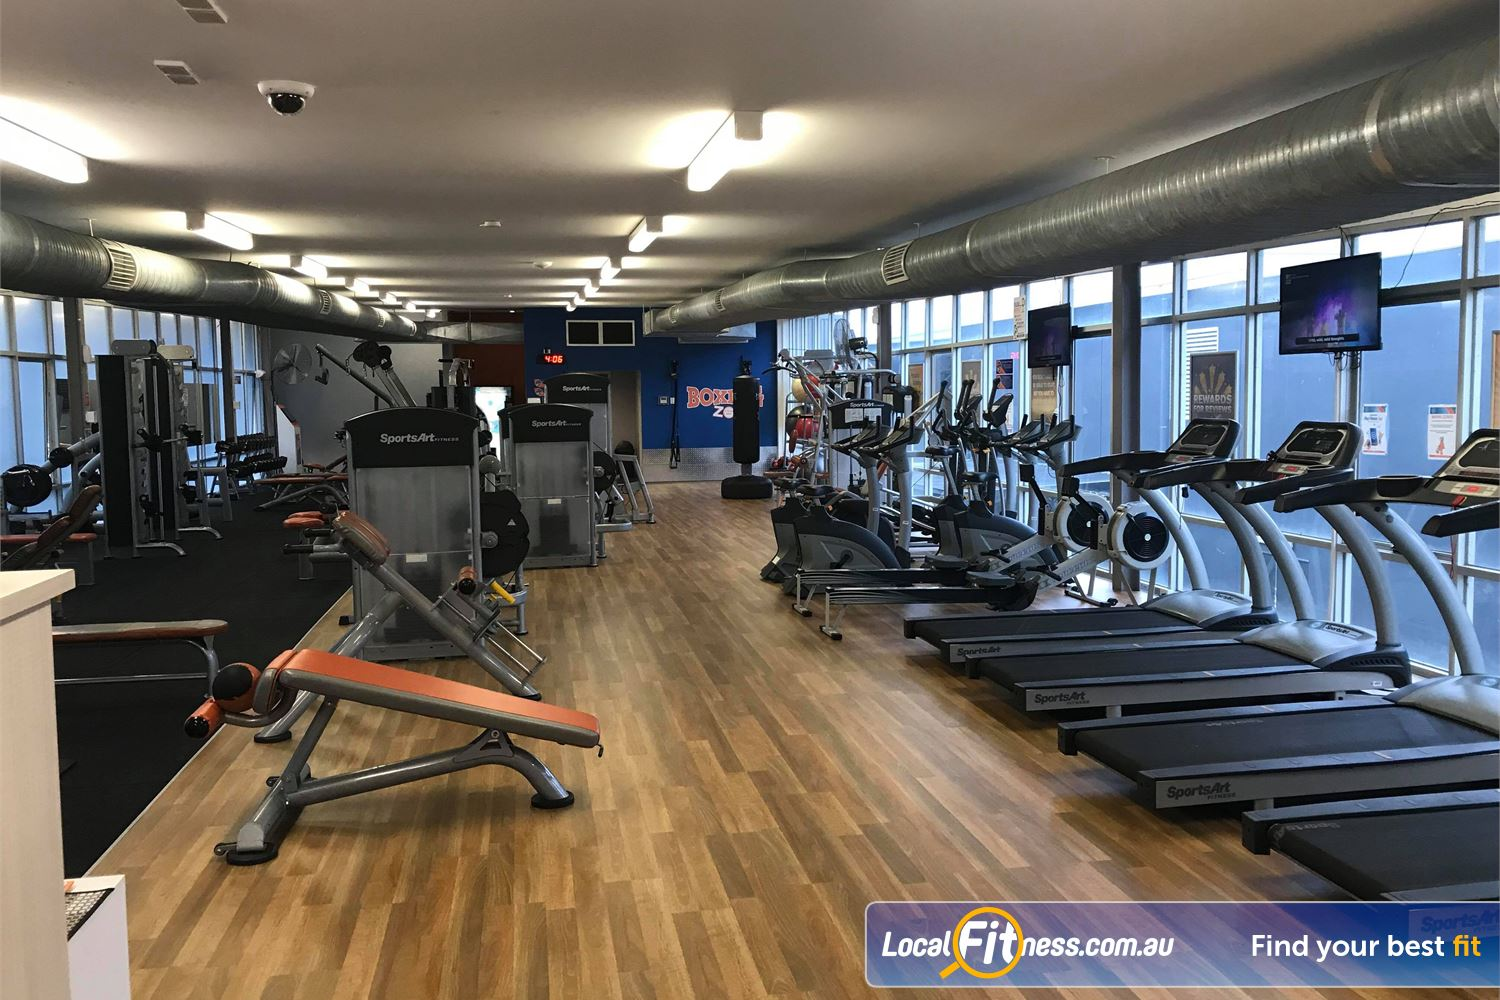 Plus Fitness 24/7 Oakleigh Our 24 hour gym Oakleigh provides cardio access any time of day.